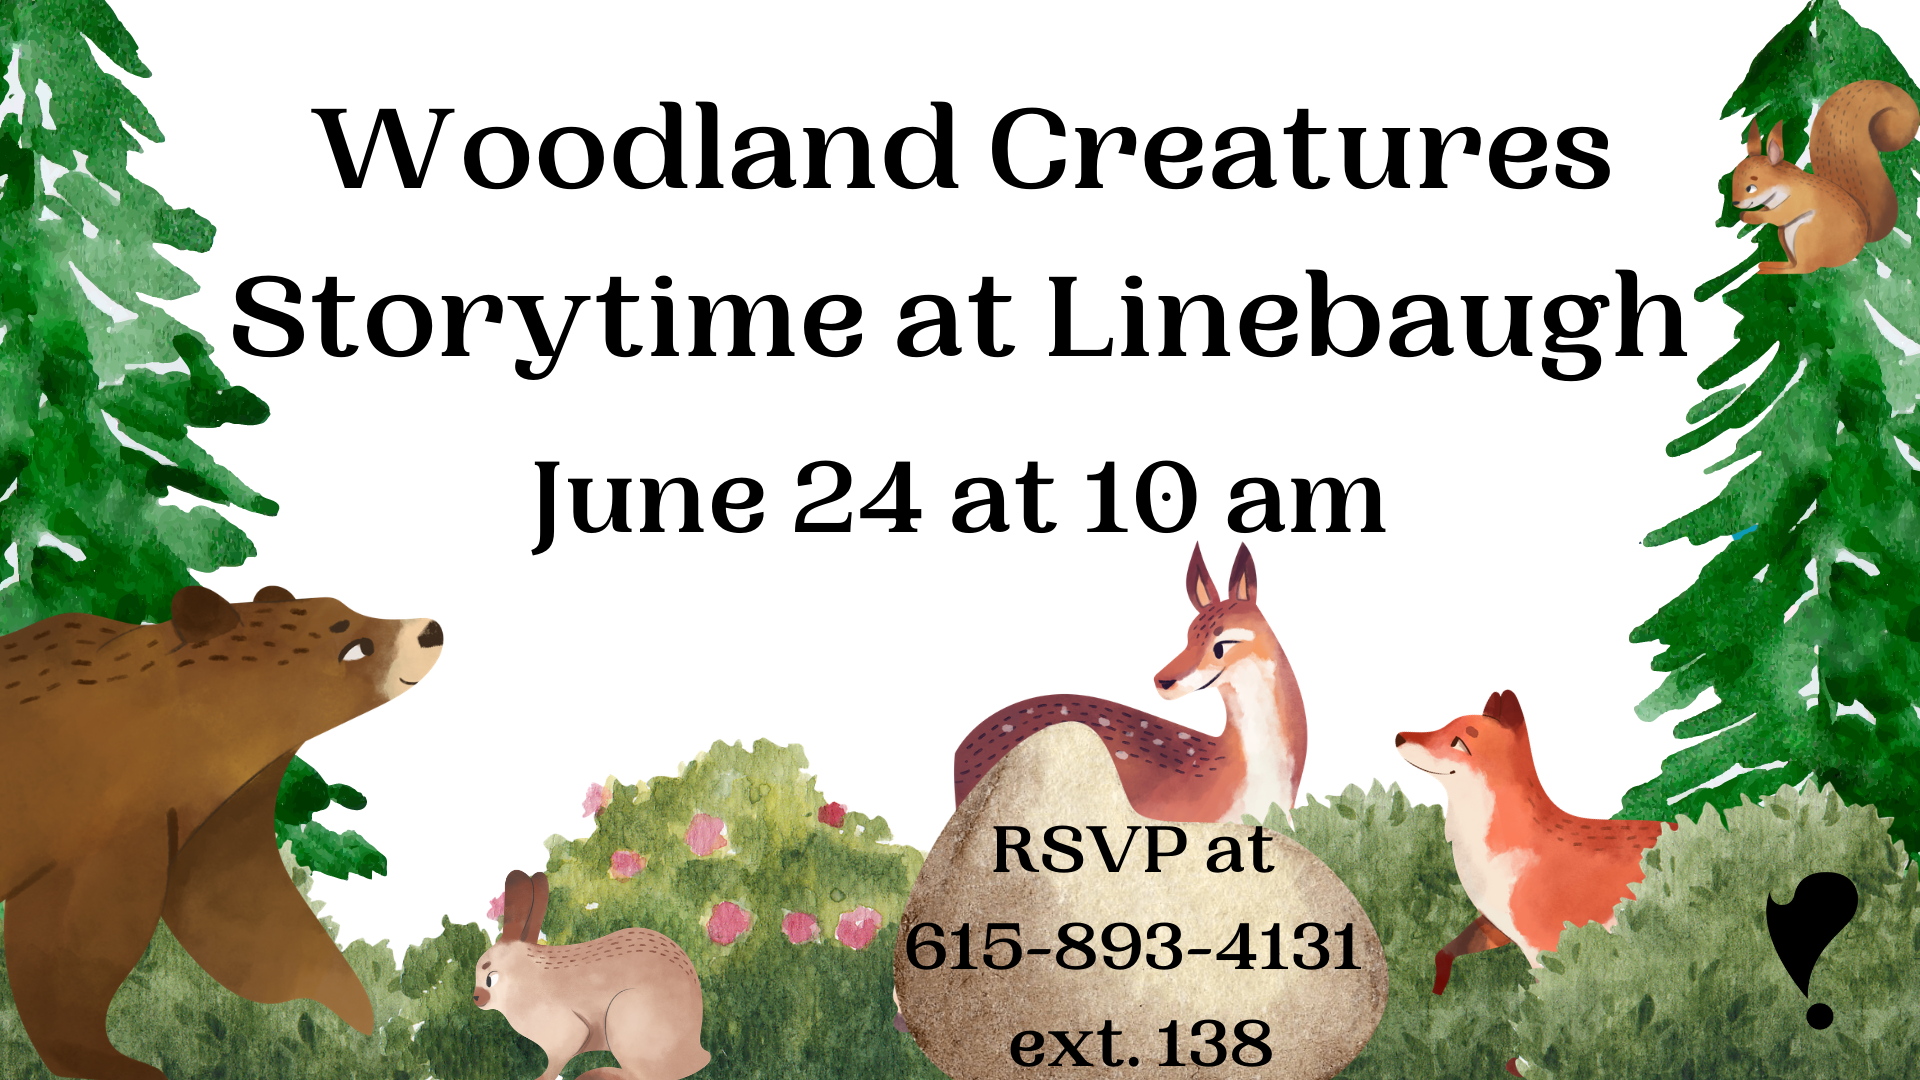 Woodland Creatures Storytime